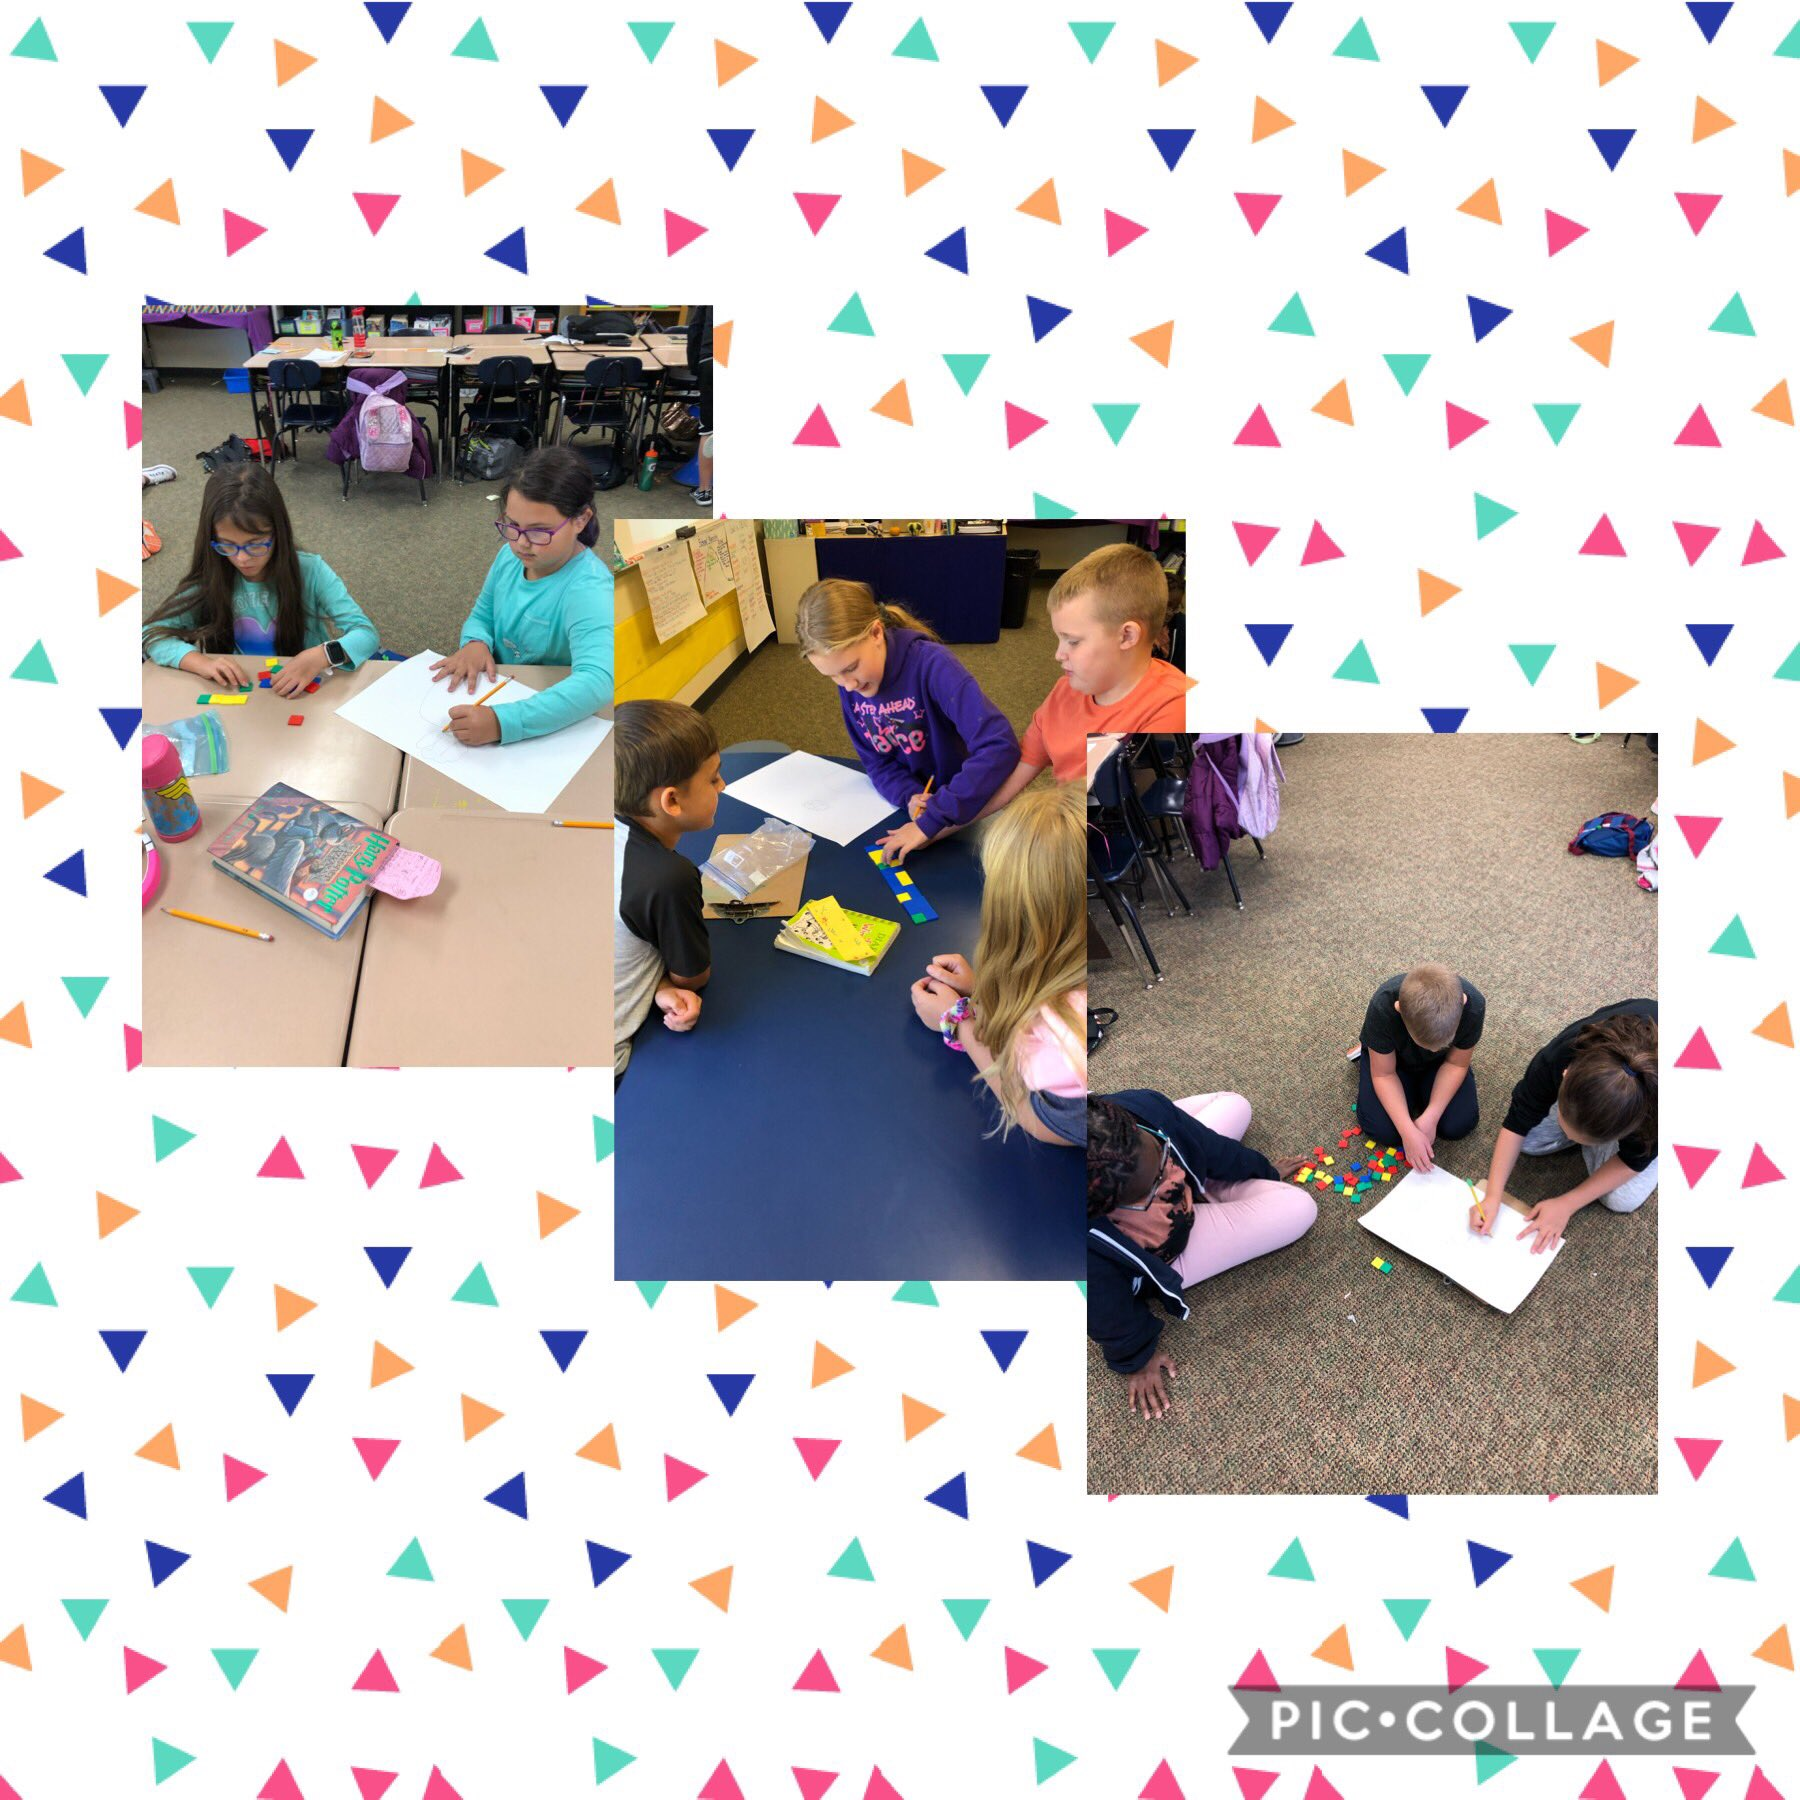 4th graders building arrays to find factors in math #lctitanhill https://t.co/tdJKGIAc3q